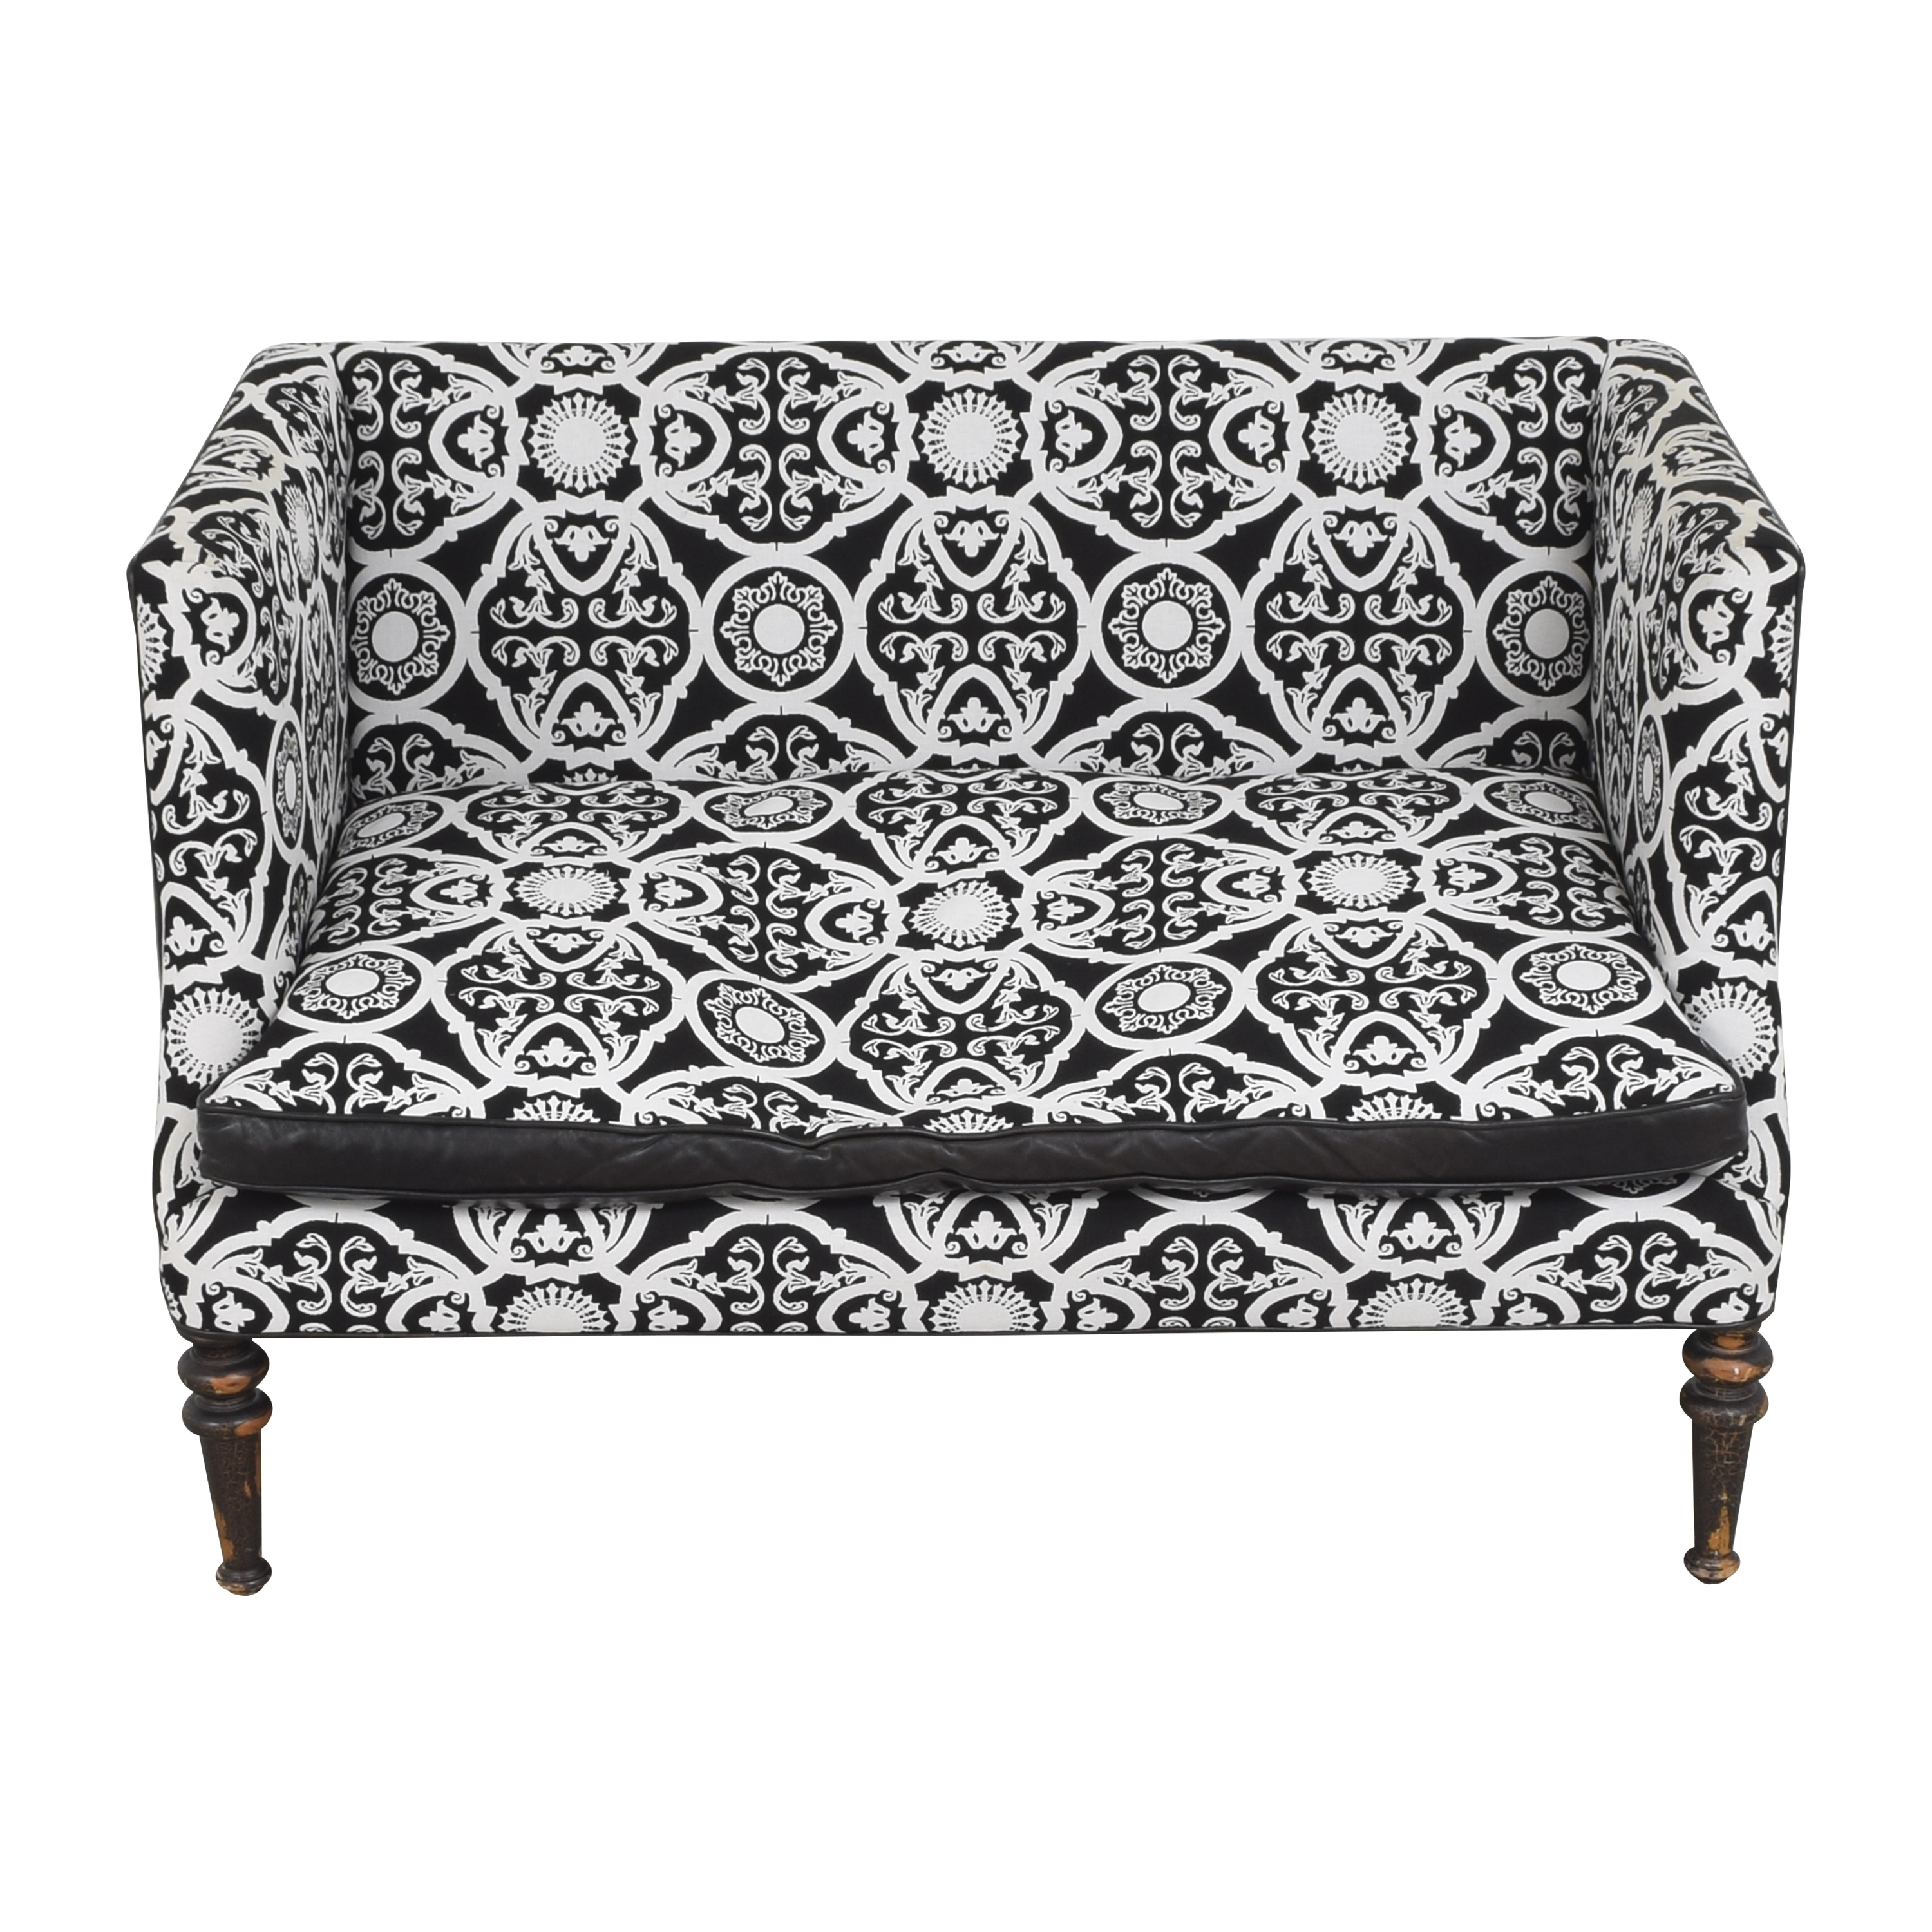 buy Old Hickory Tannery Old Hickory Tannery Decorative Settee online